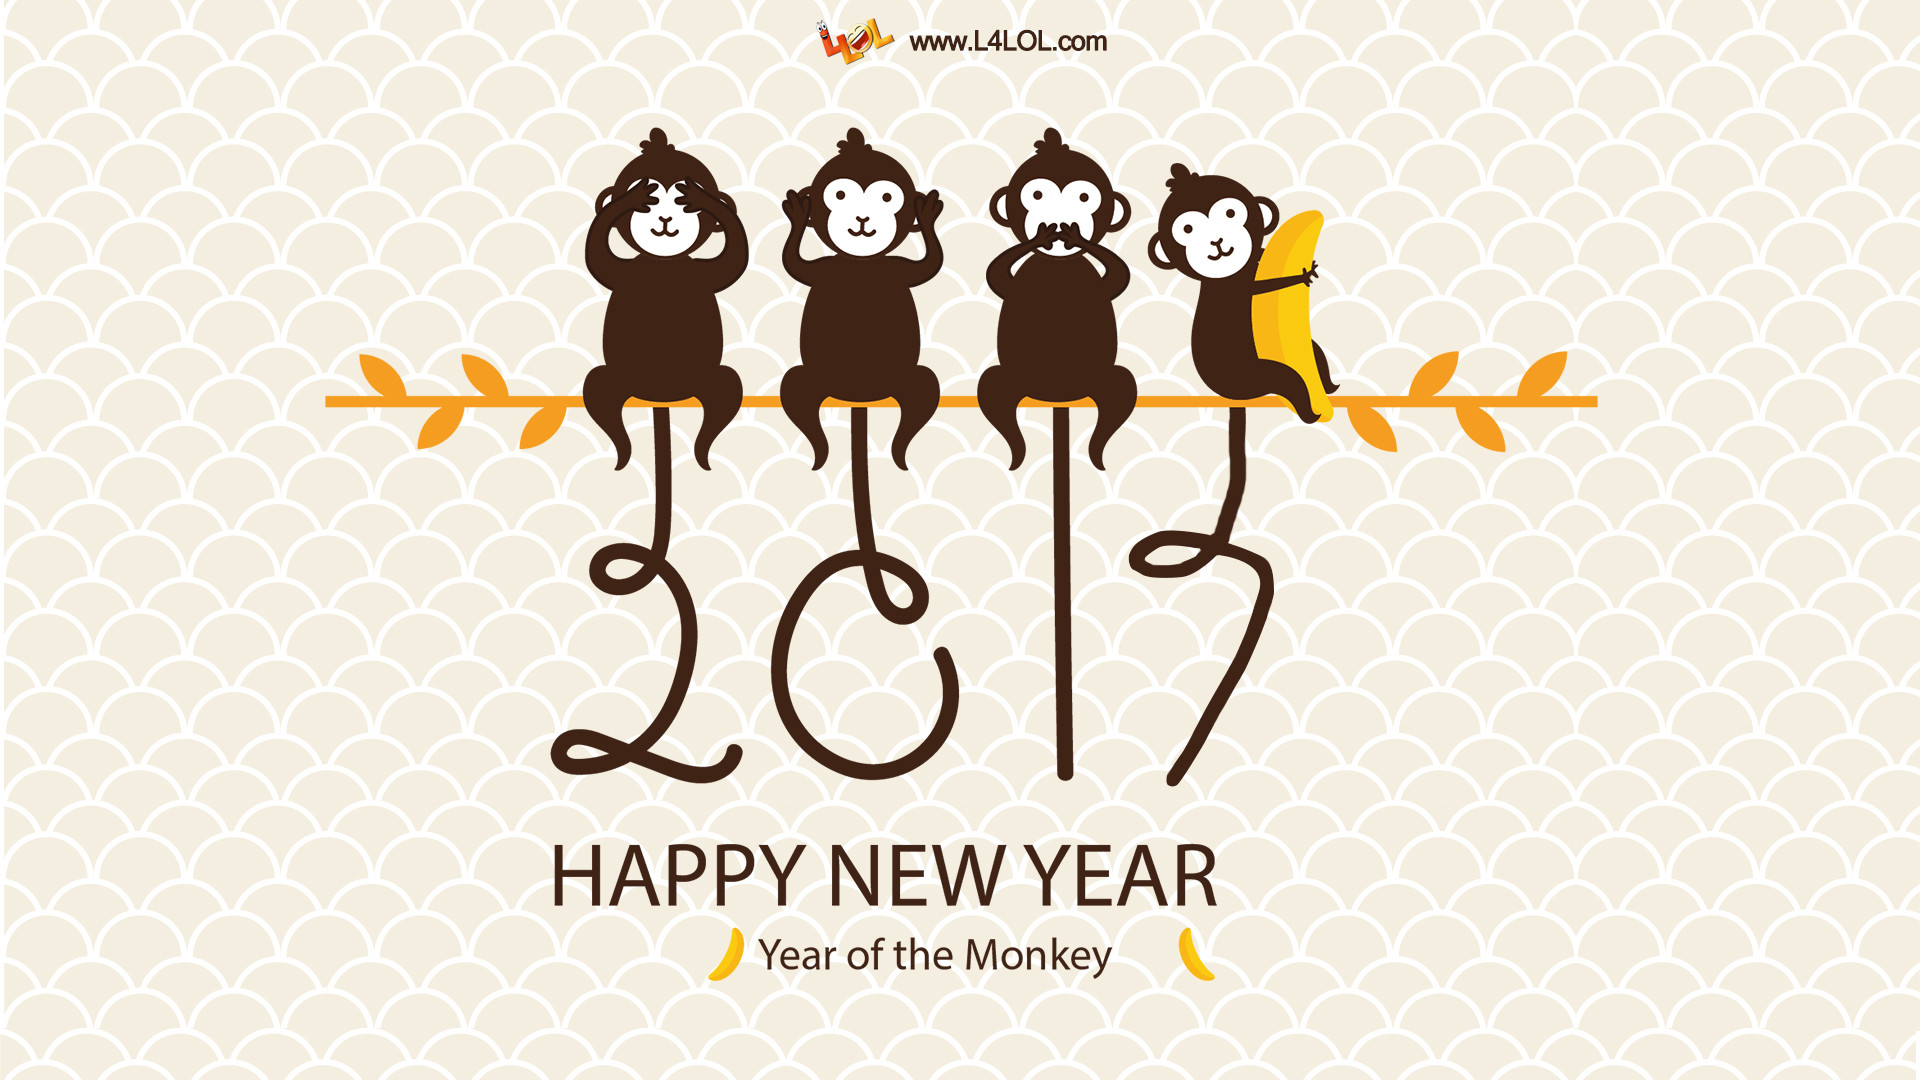 Celebrate Happy new year 2017 with Happy New Year 2017 Images , Happy New  Year 2017 Wishes , Happy New Year 2017 Wallpapers.